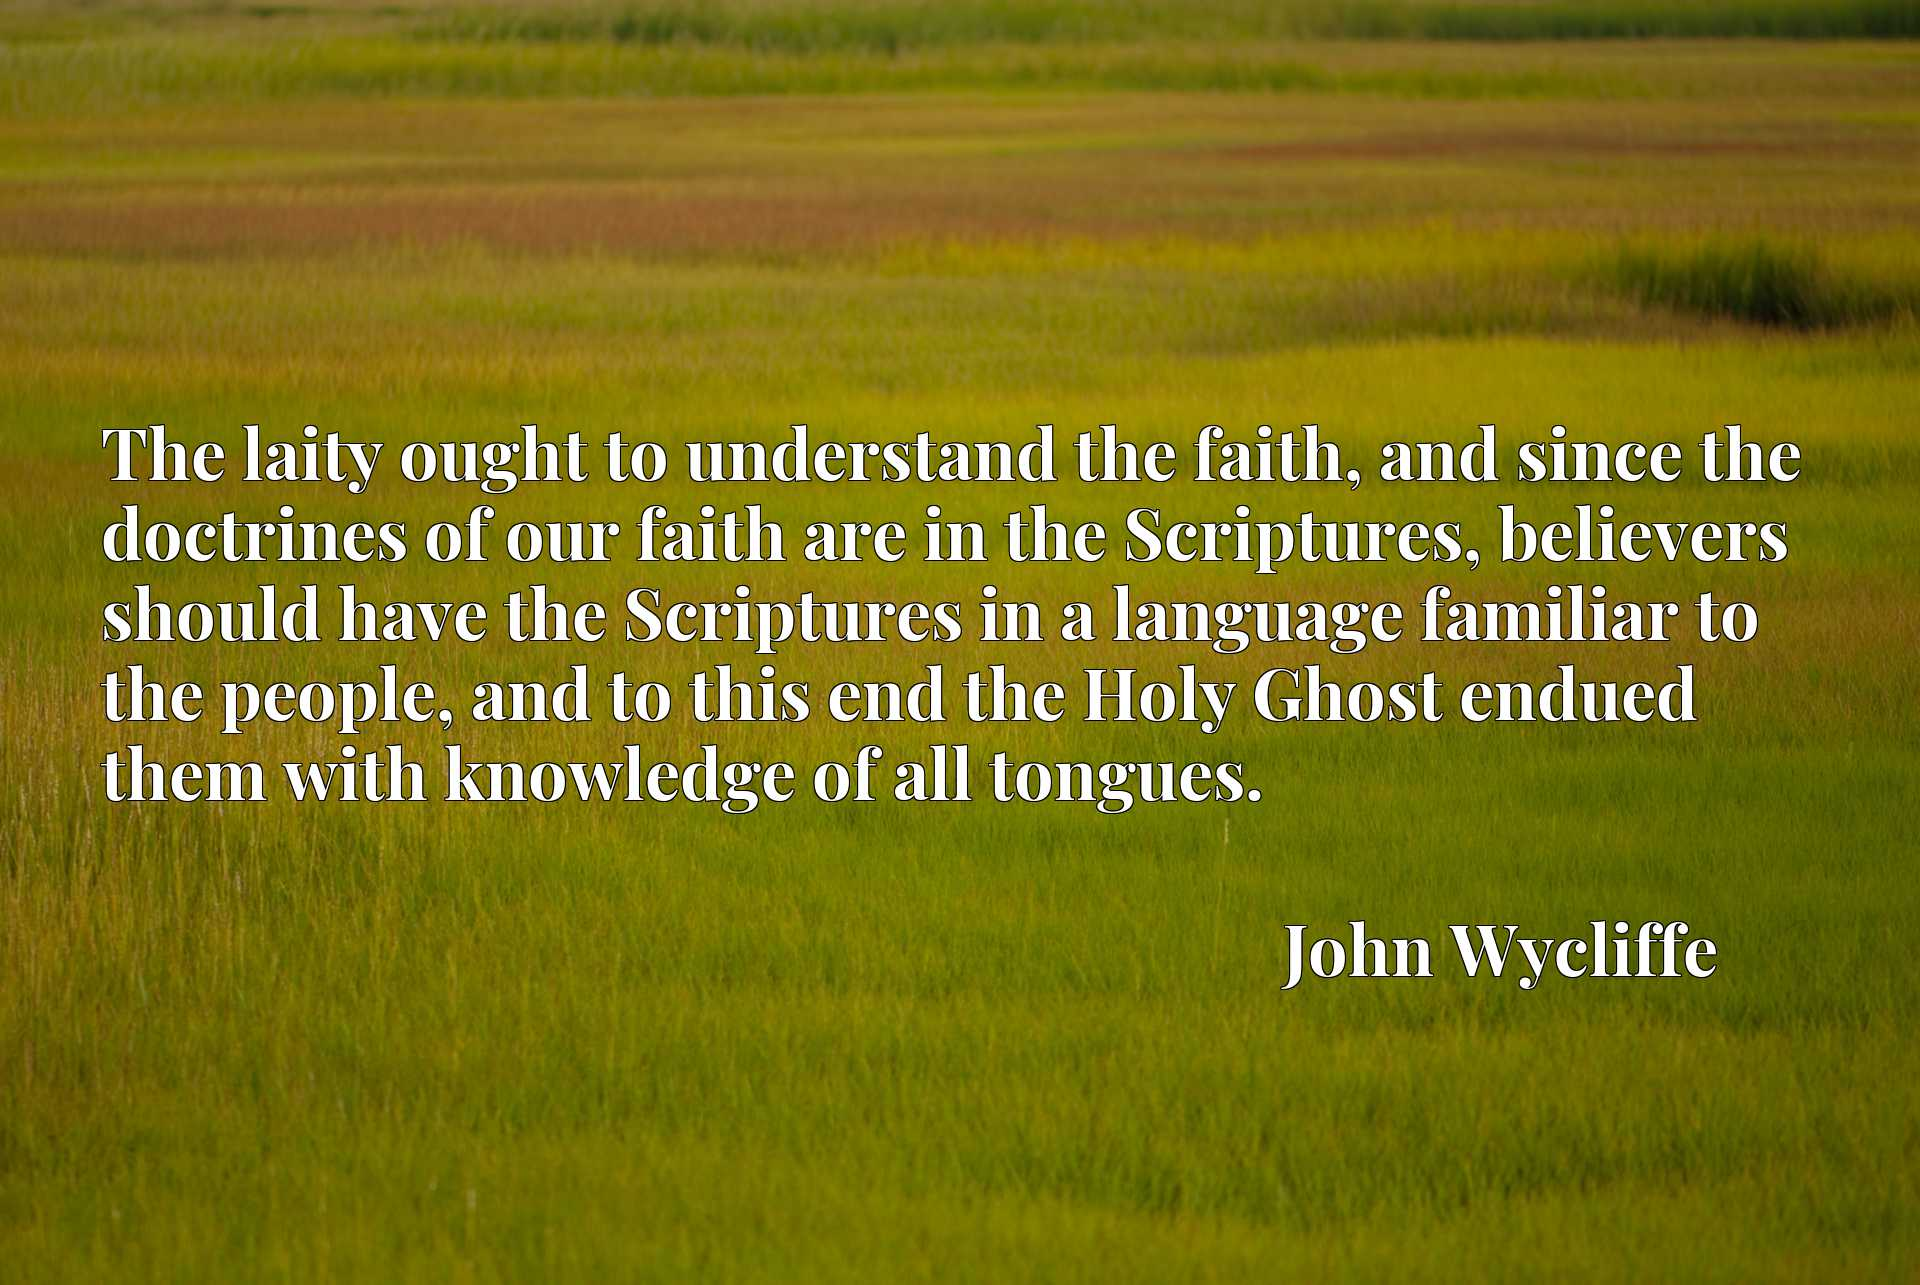 The laity ought to understand the faith, and since the doctrines of our faith are in the Scriptures, believers should have the Scriptures in a language familiar to the people, and to this end the Holy Ghost endued them with knowledge of all tongues.